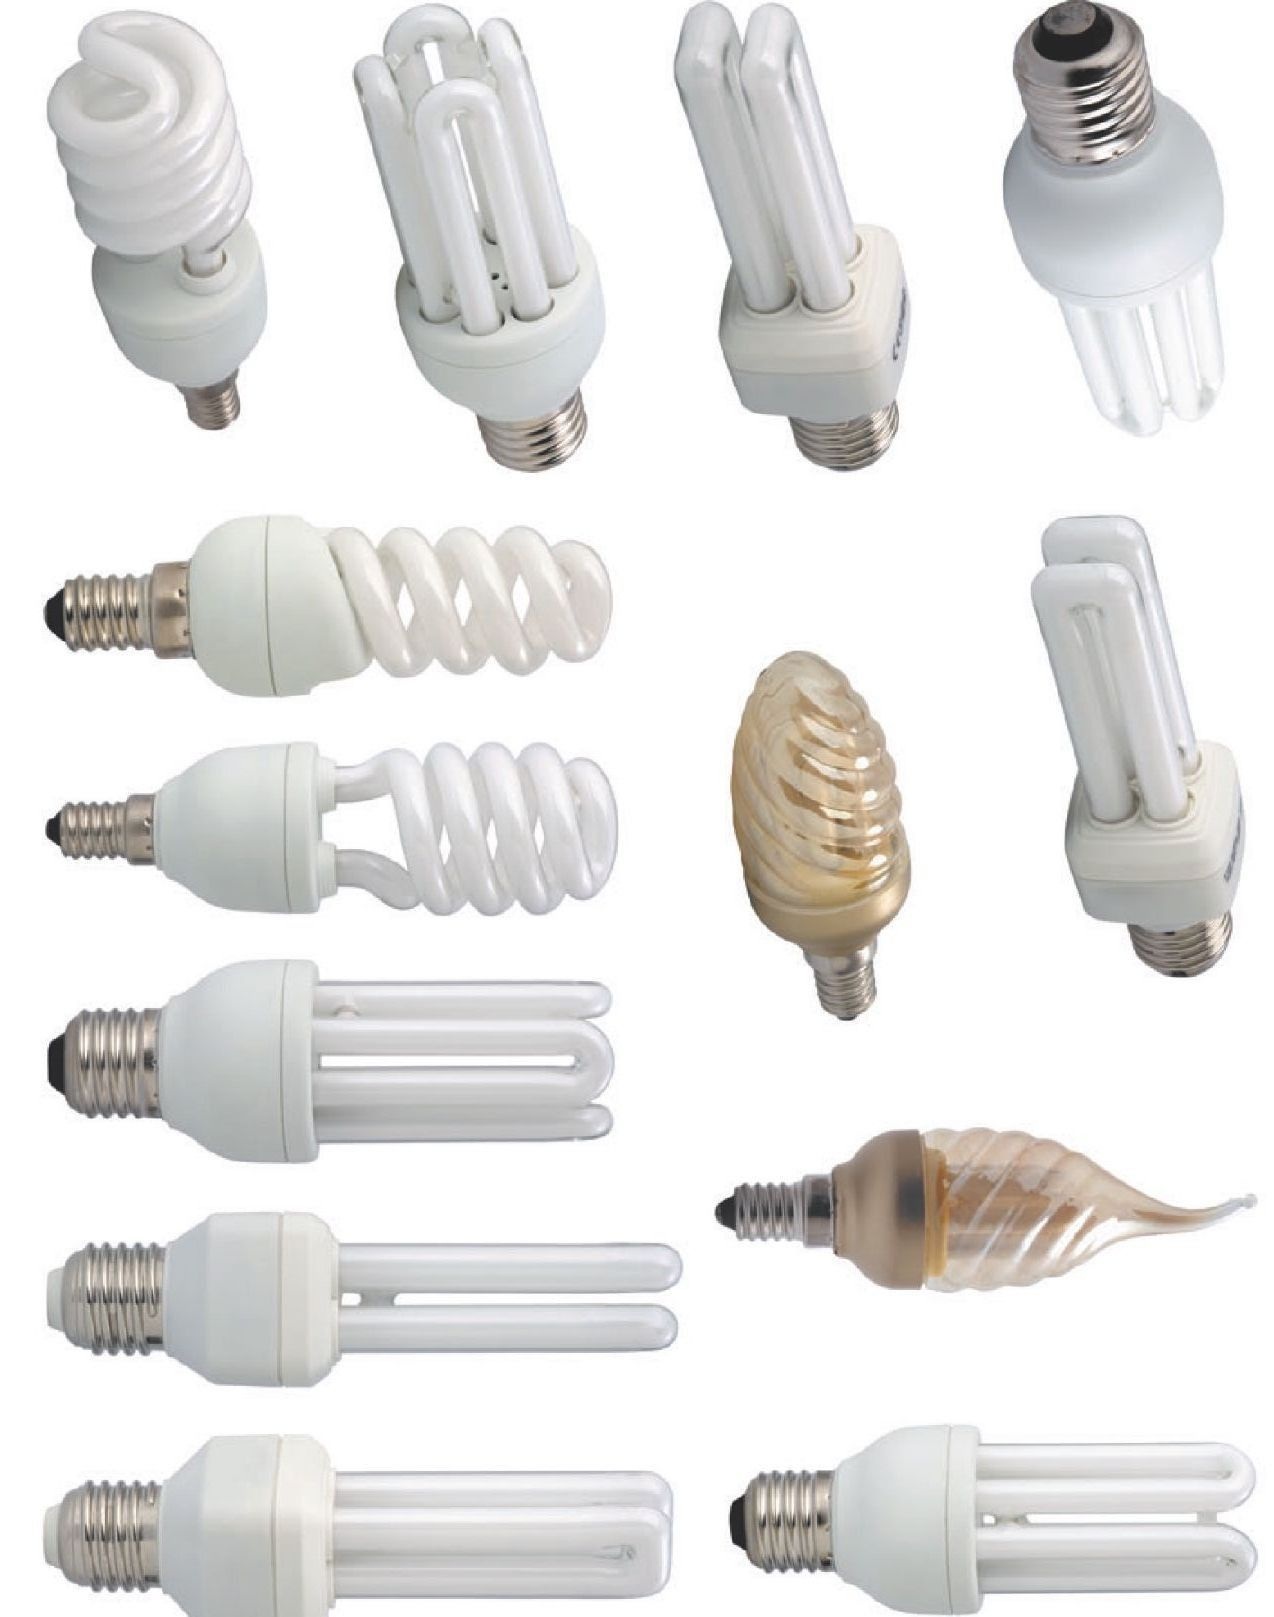 Different Types Of Cfl Light Bulbs Light Bulb Light Bulb Types Fluorescent Light Bulb